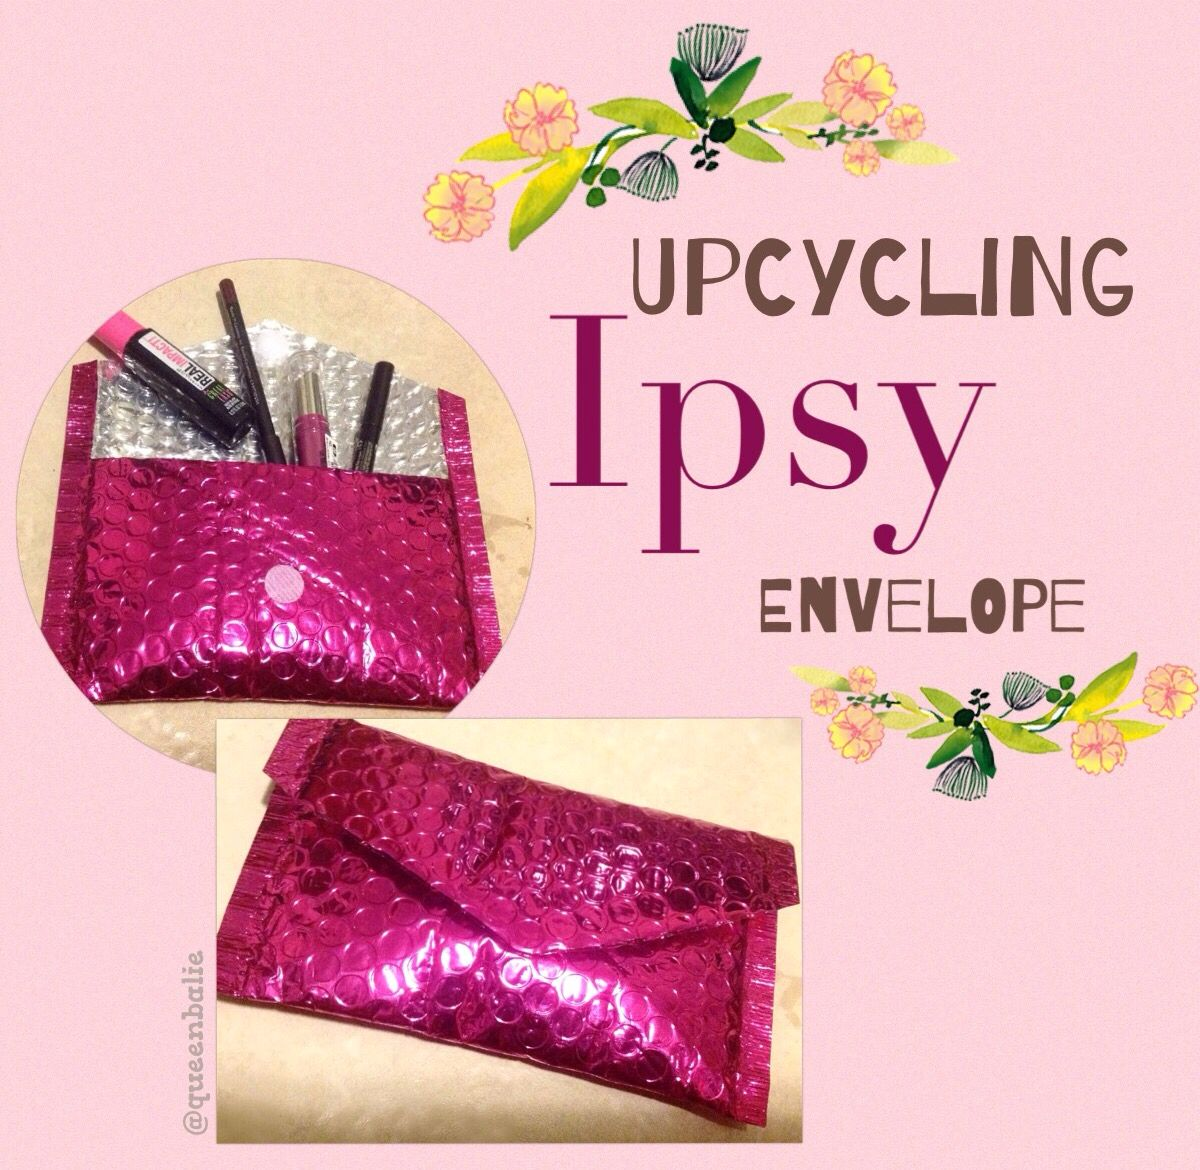 Upcycled Ipsy Envelope By Queenbalie Art Inspo House